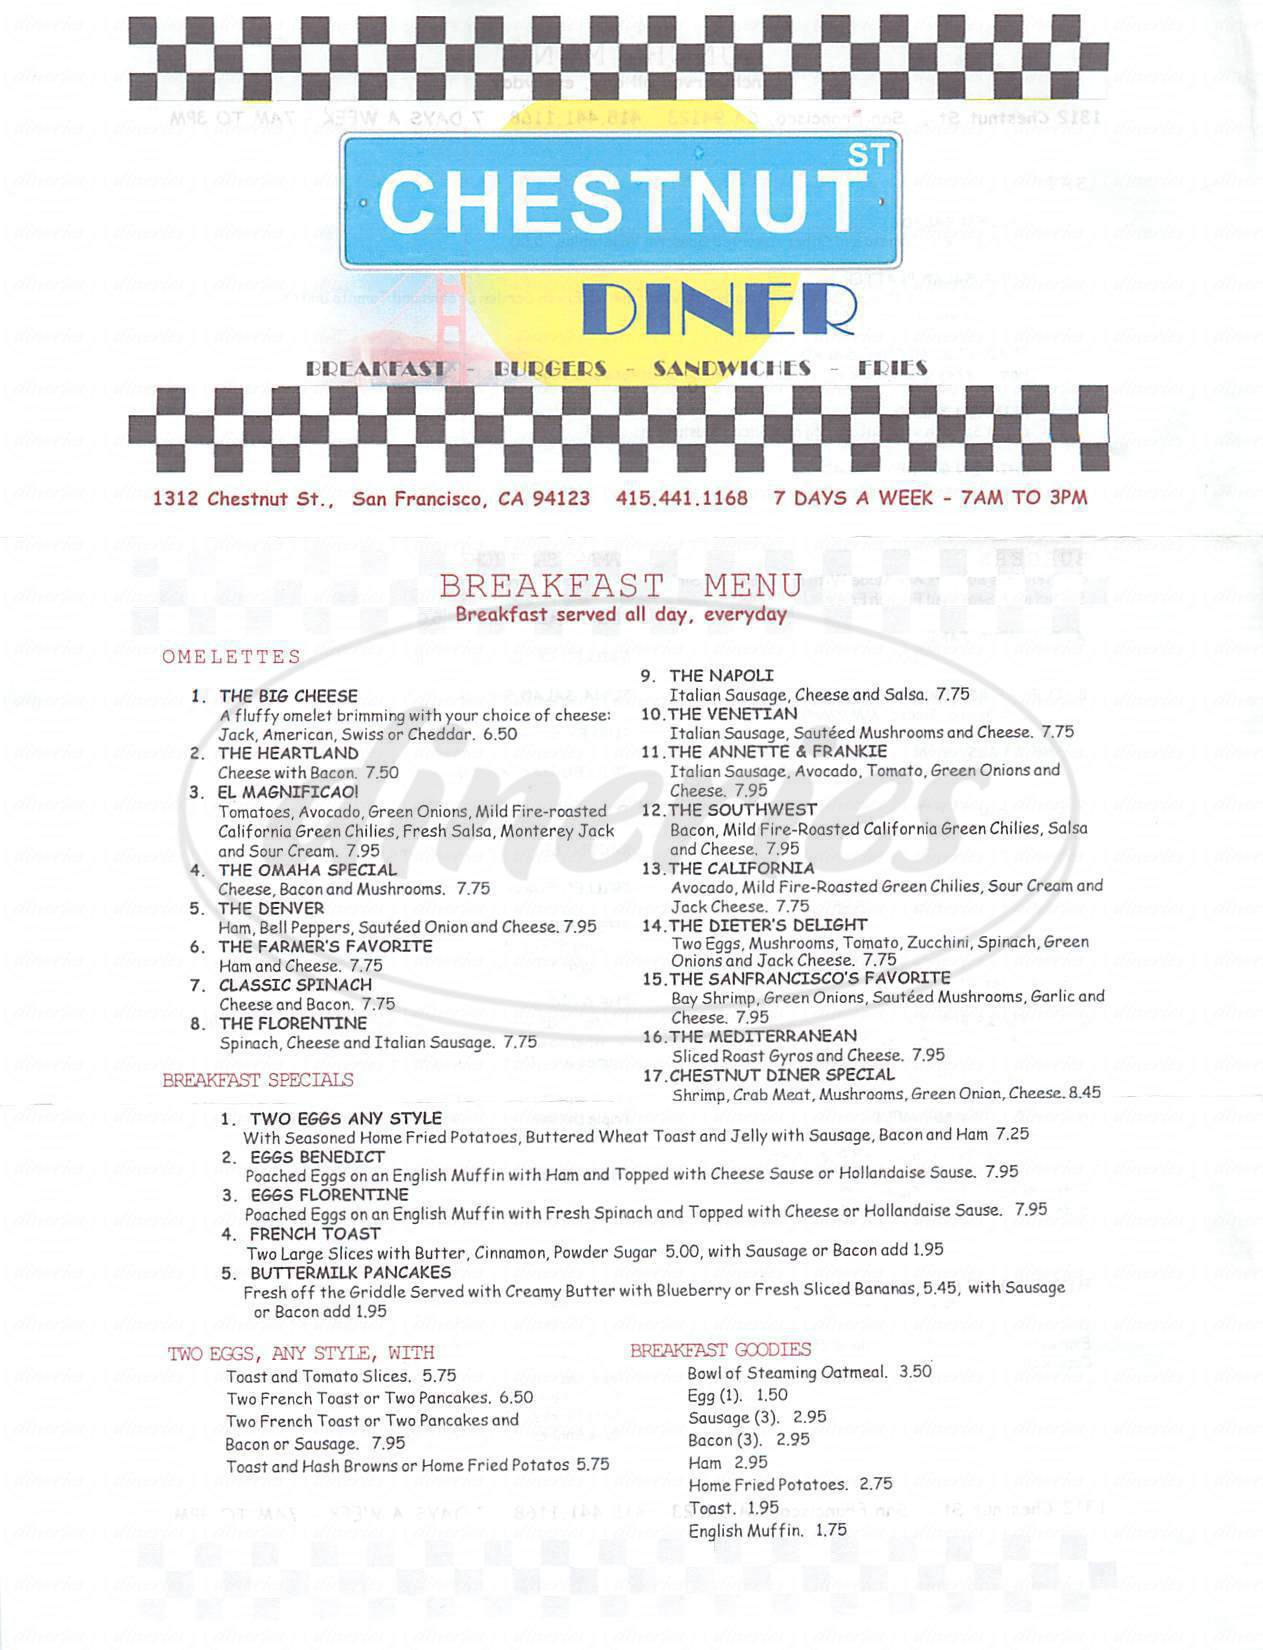 menu for Chestnut Diner